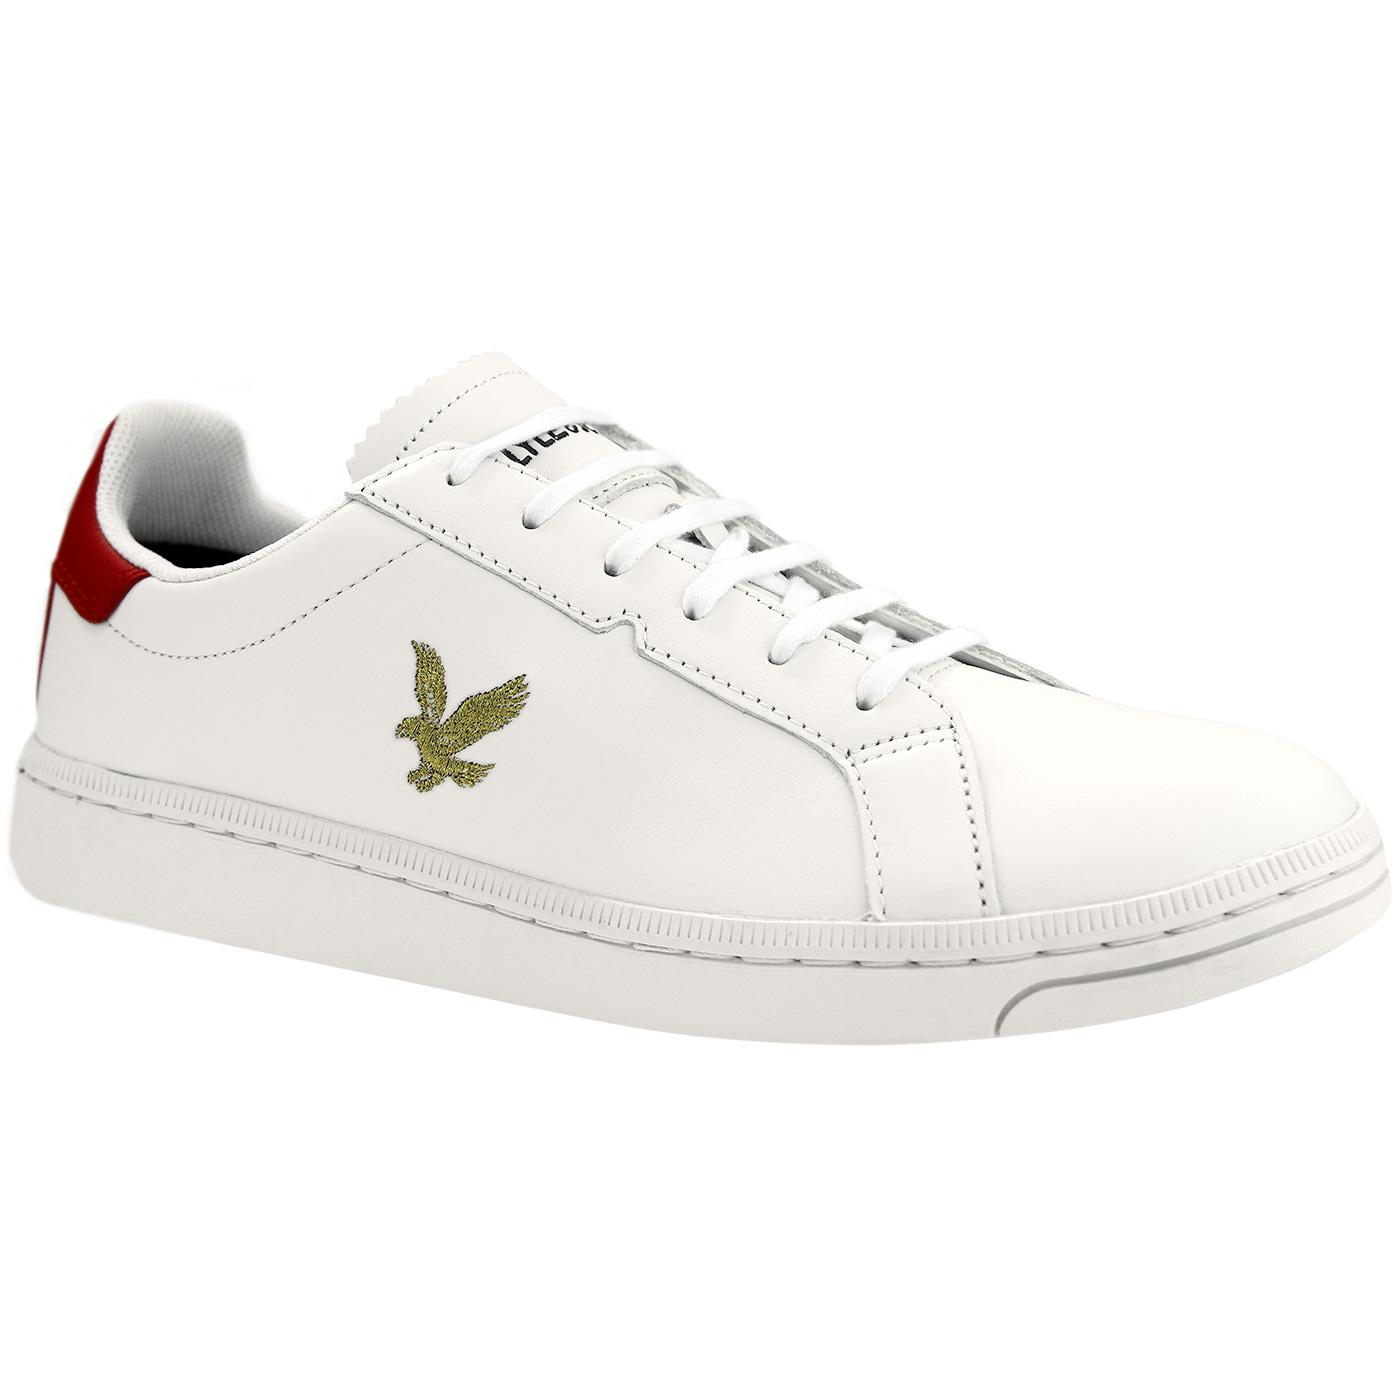 Cormack LYLE & SCOTT Men's Mod Casuals Trainers WR